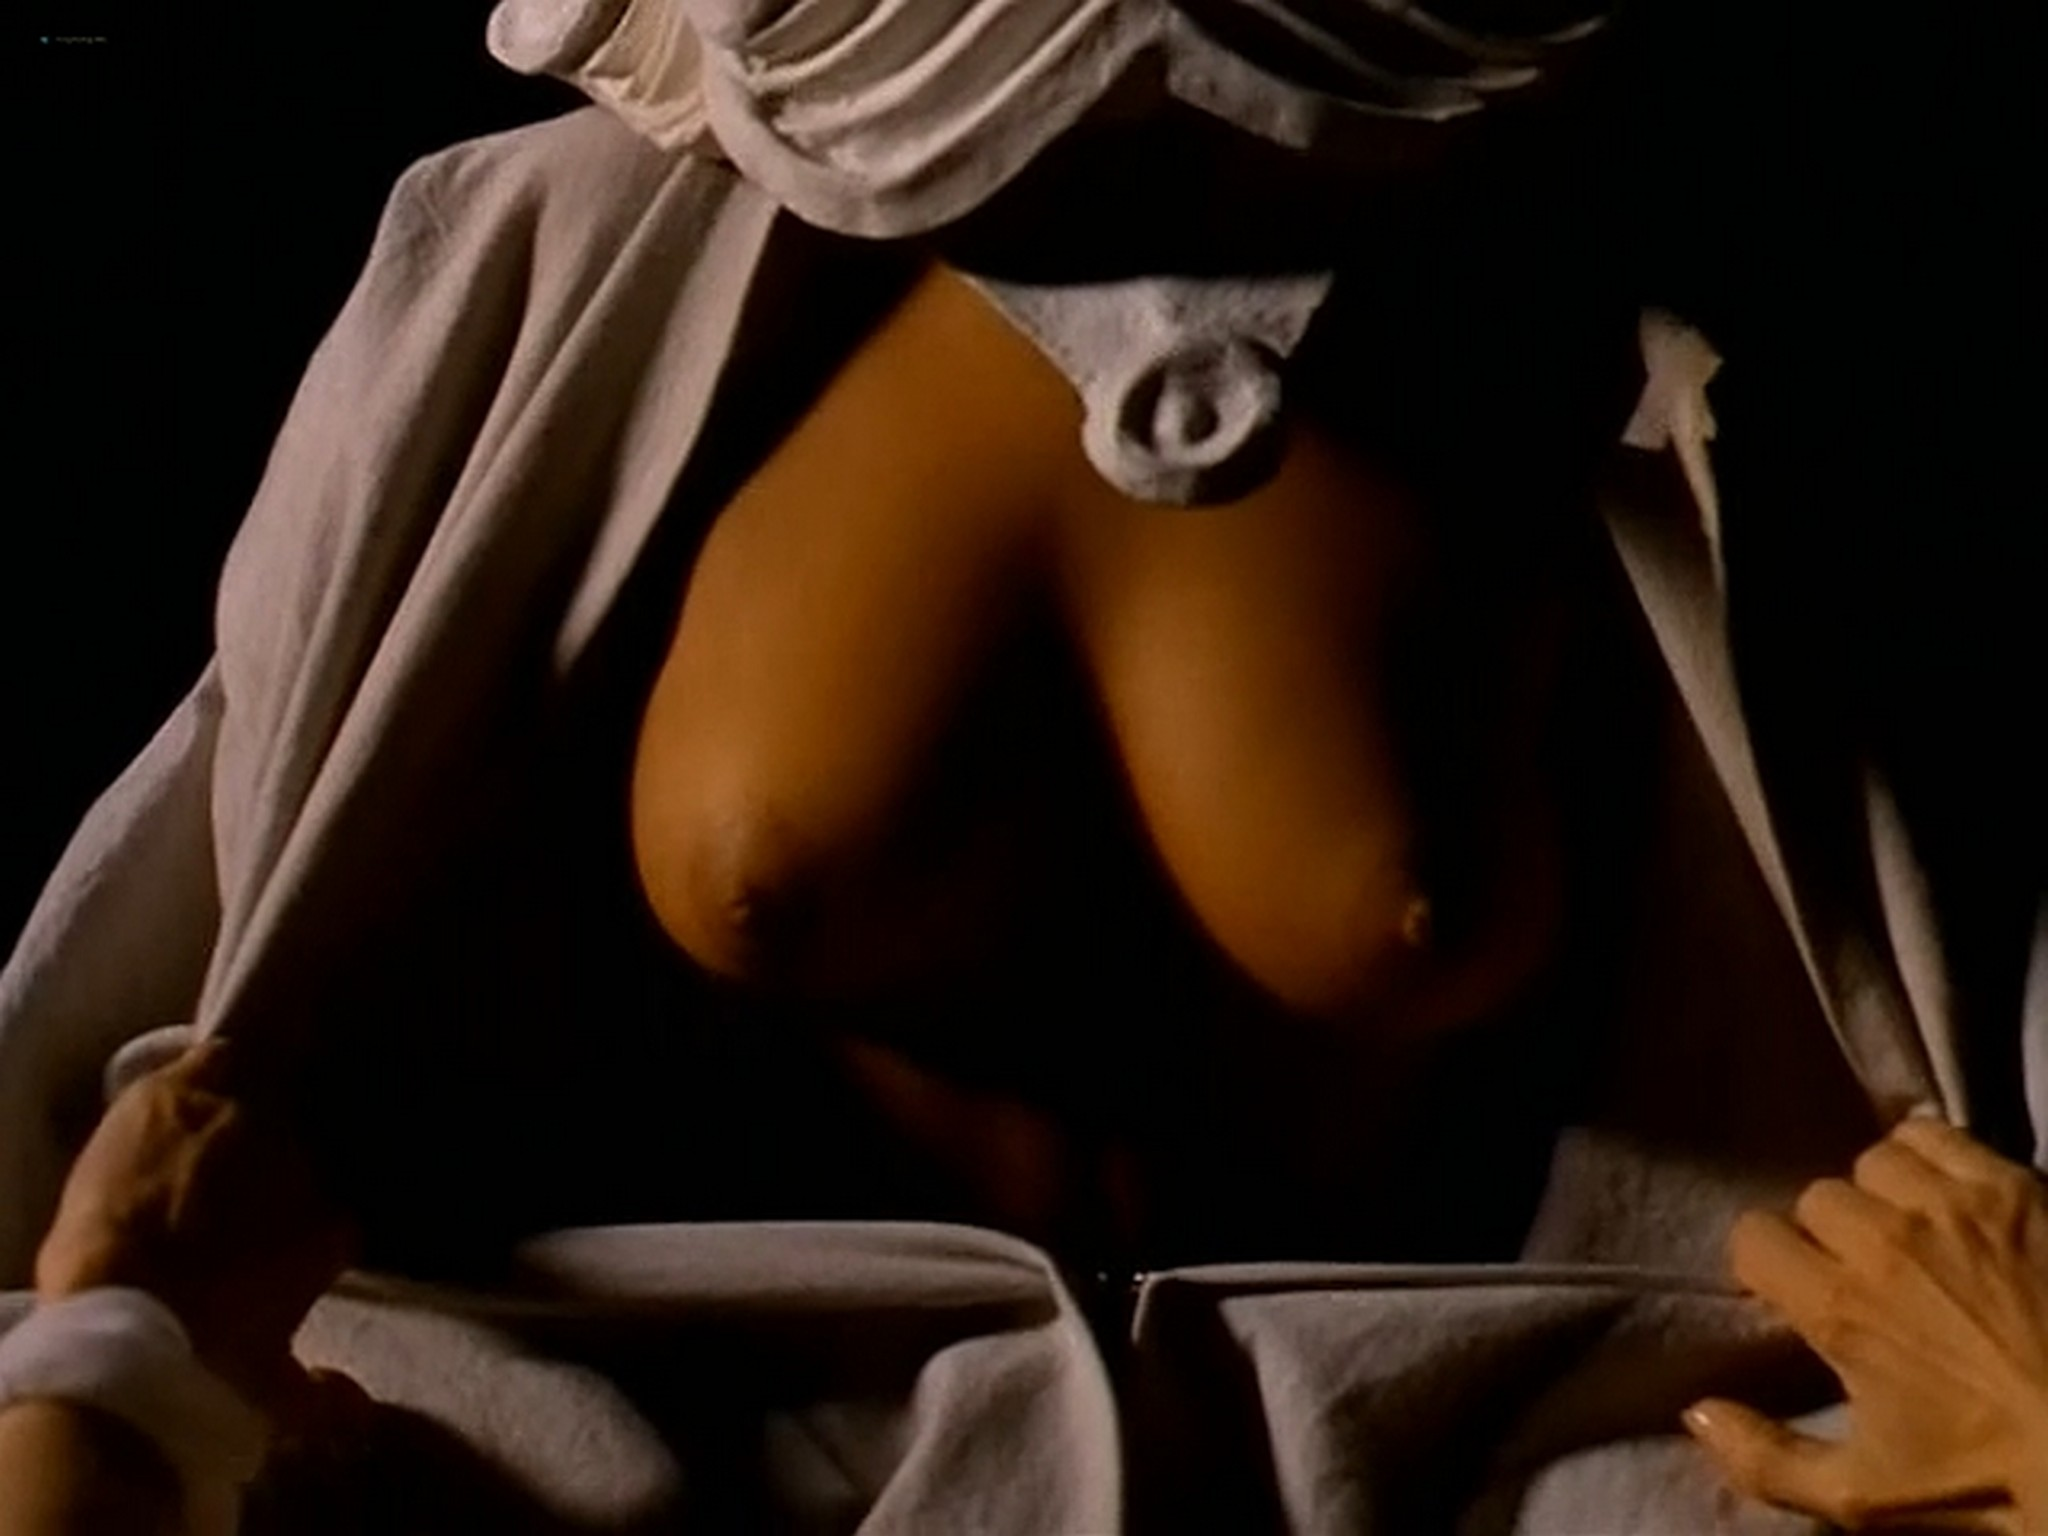 Tilda Swinton naked full frontal others nude sex too Female Perversions 1996 DVDRip 15